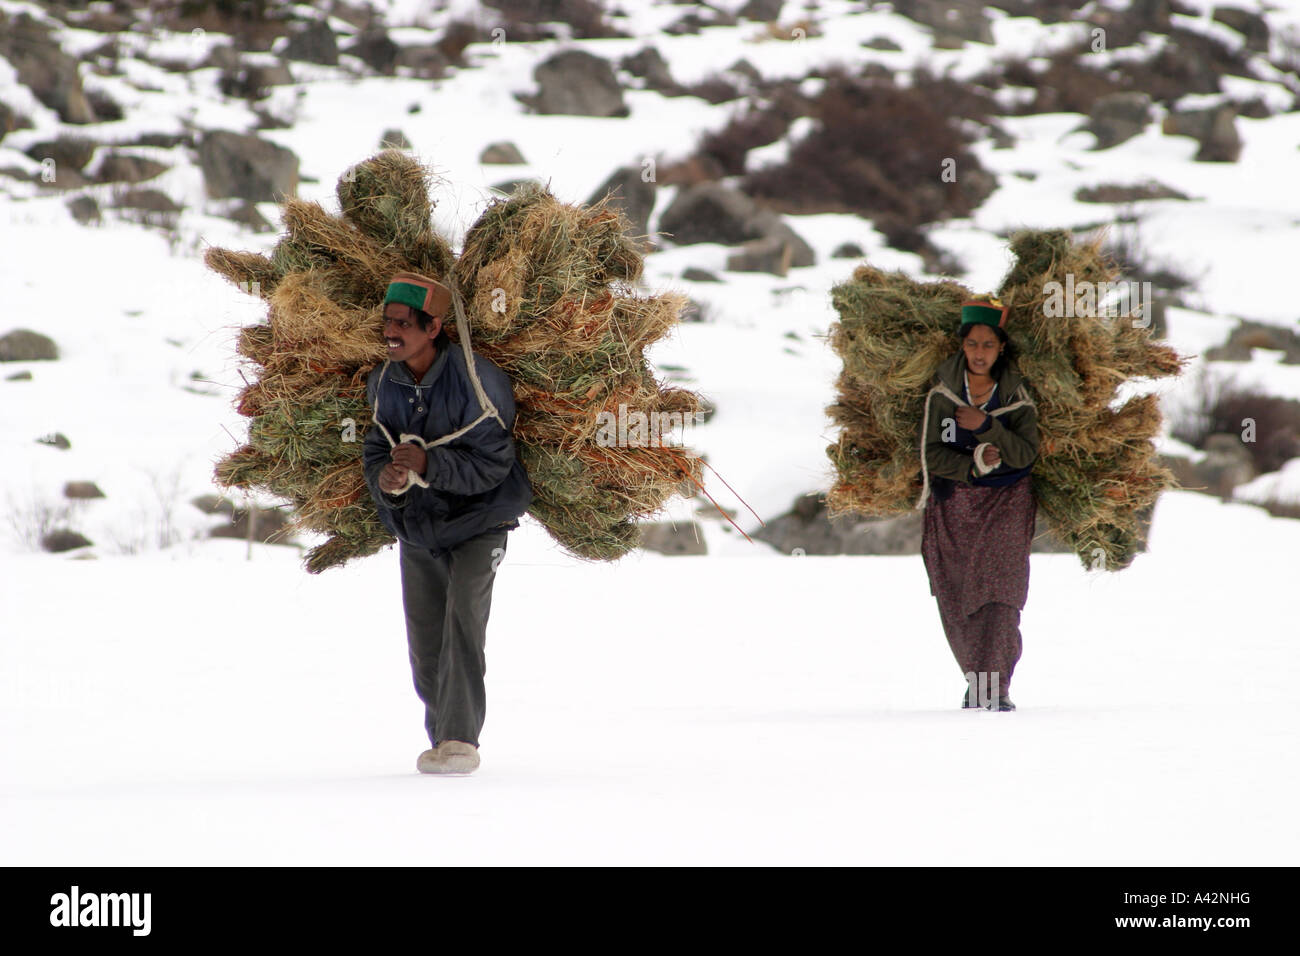 Villagers carry fodder for their cattle's in extreme winters in village Chitkul in Himachal Pradesh, India - Stock Image